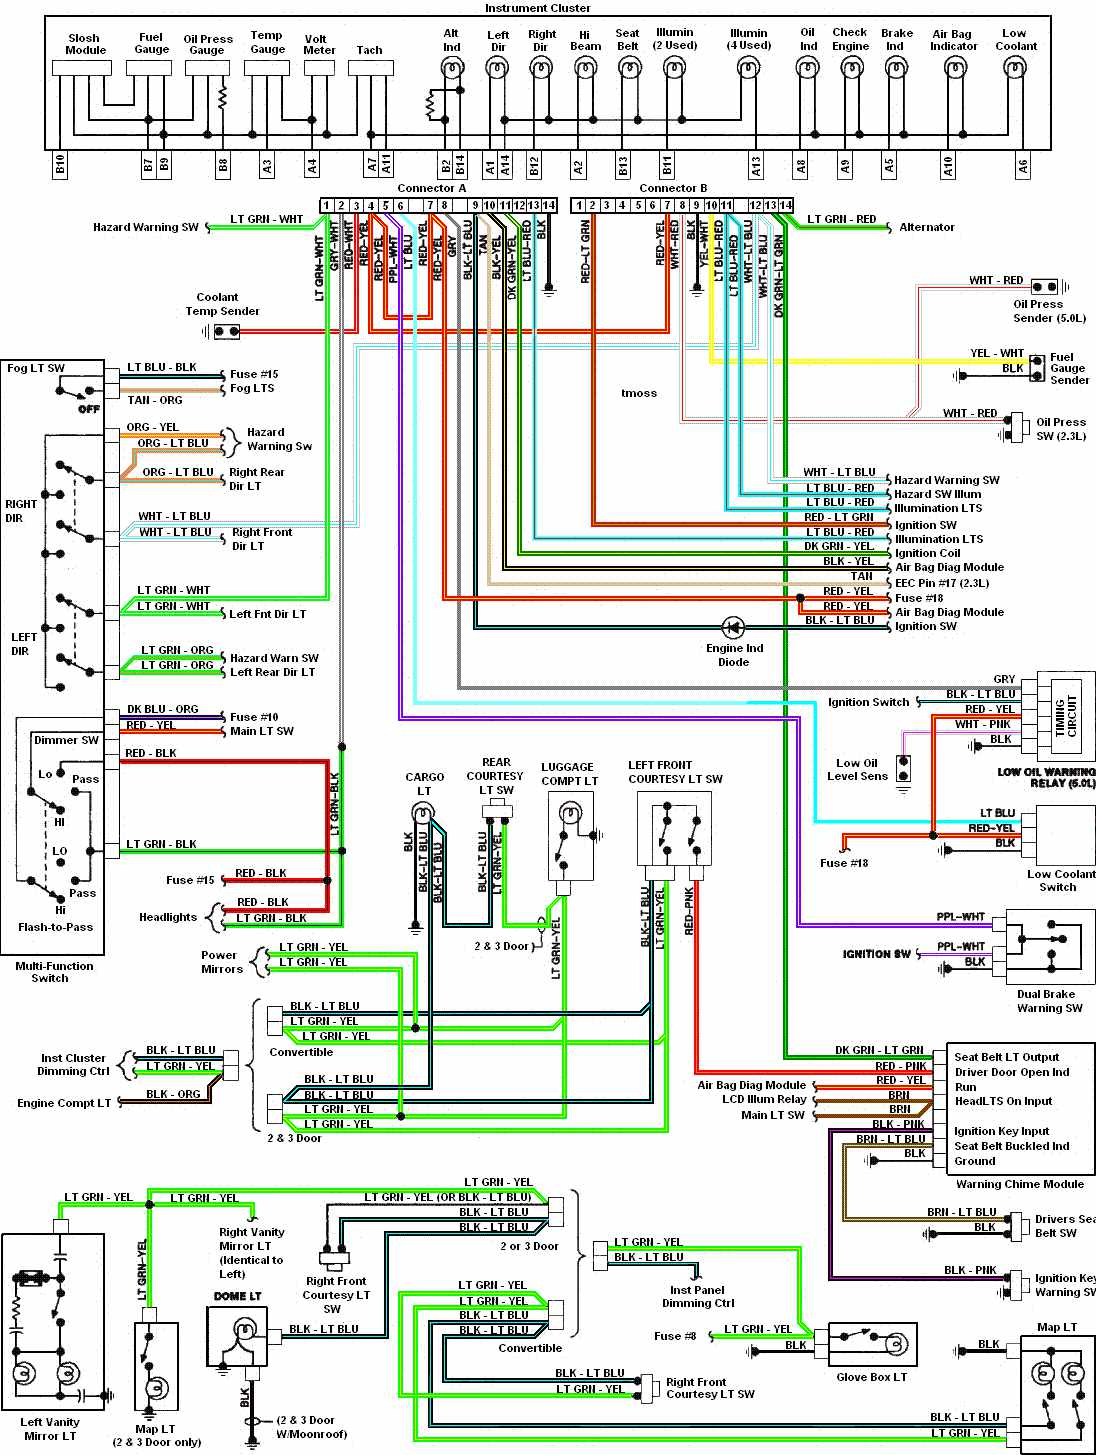 1993 Ford Stereo Wiring Diagram - All Wiring Diagram Data - Ford Ranger Radio Wiring Diagram